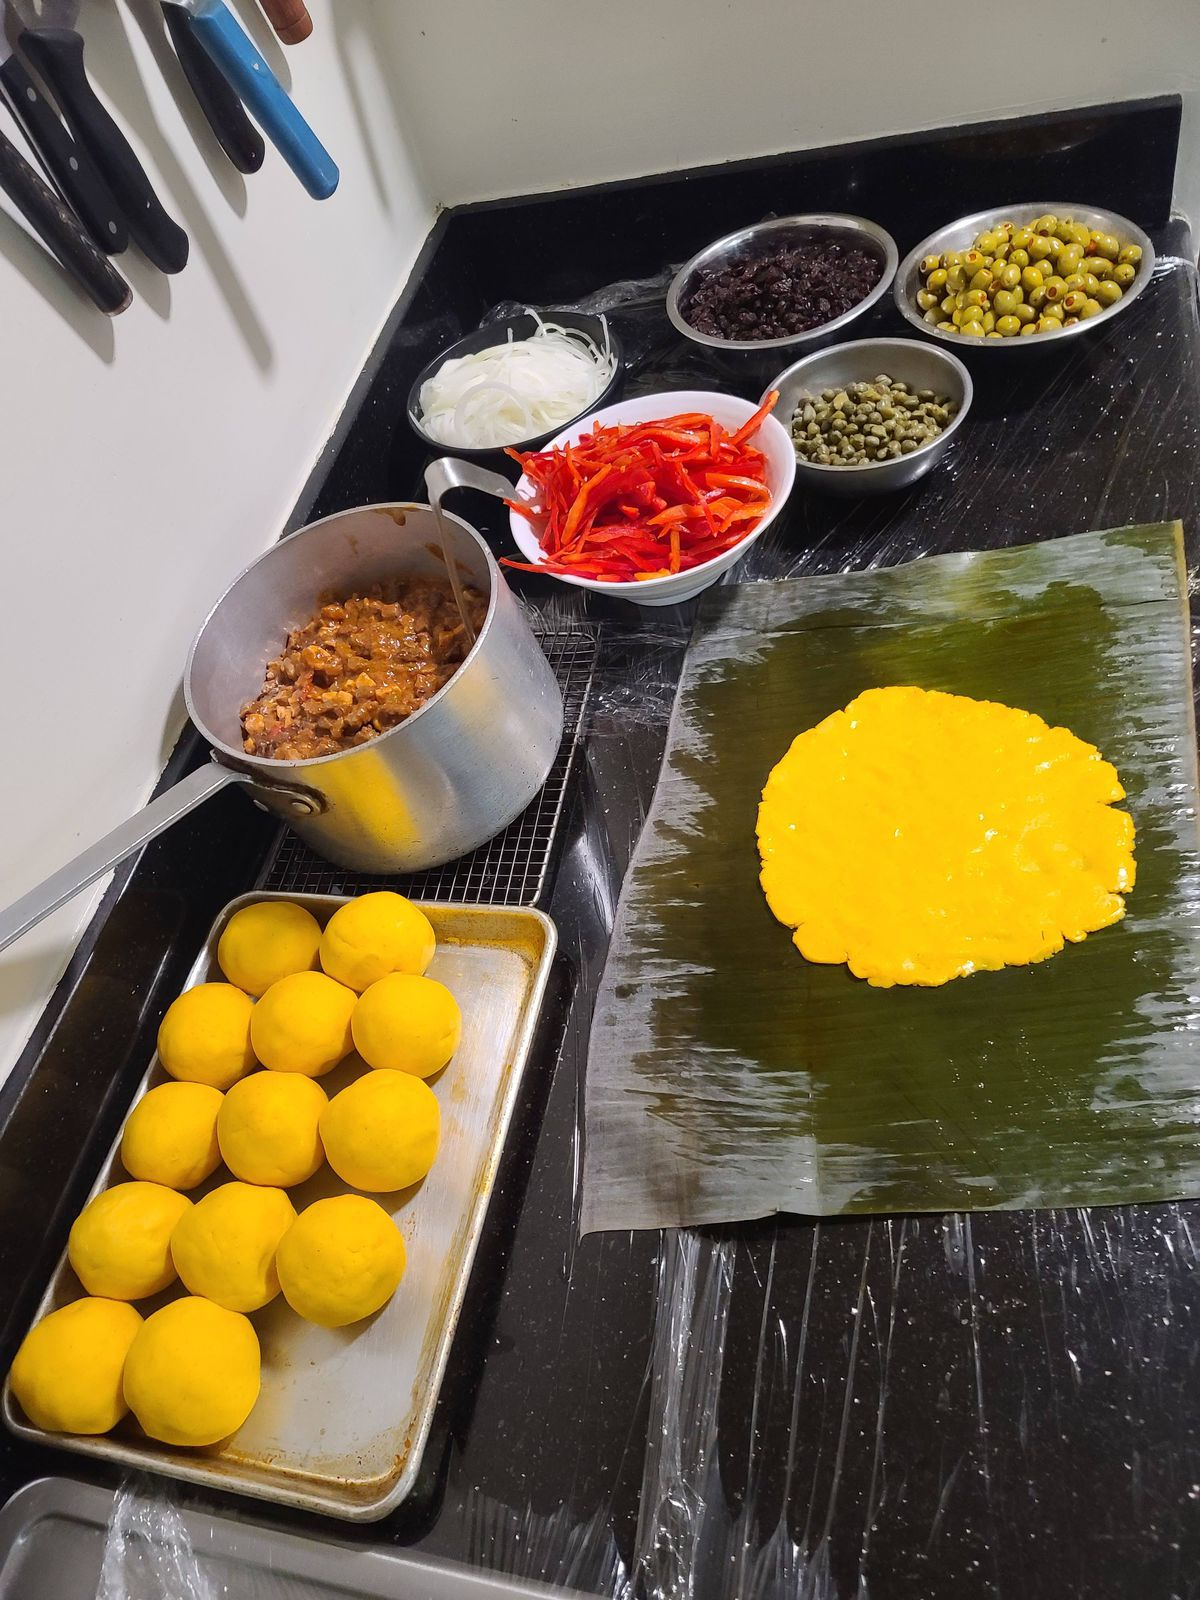 Ingredients for making hallaca: balls of raw corn dough, a meat stew, peppers, olives, and raisins